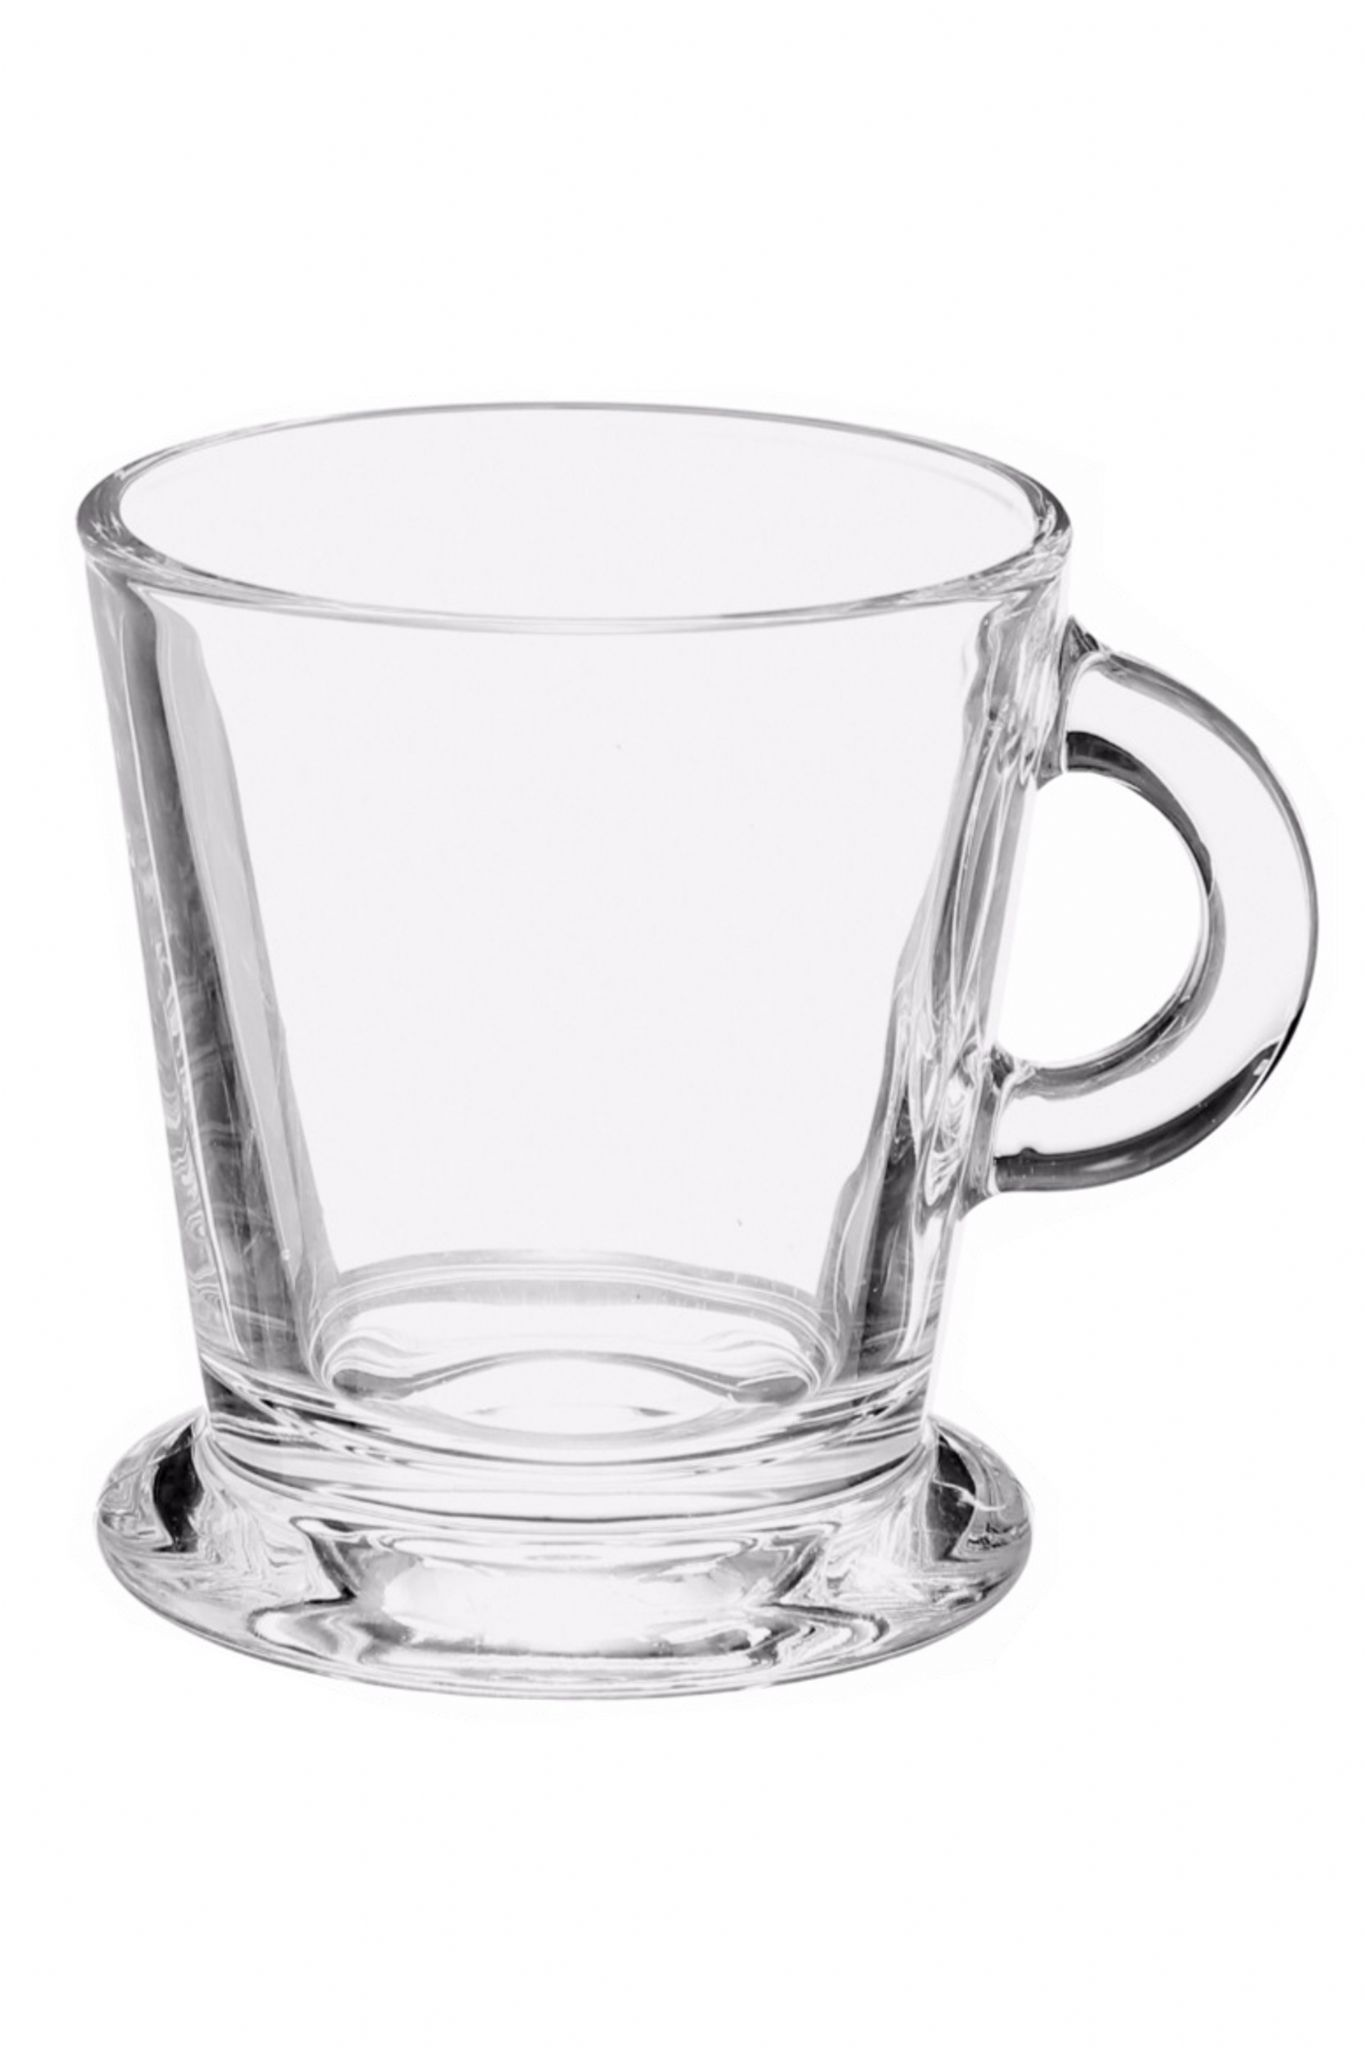 Glass espresso coffee cups uk - Clear Glass Espresso Coffee Cups Capacity 80ml Set Of 6